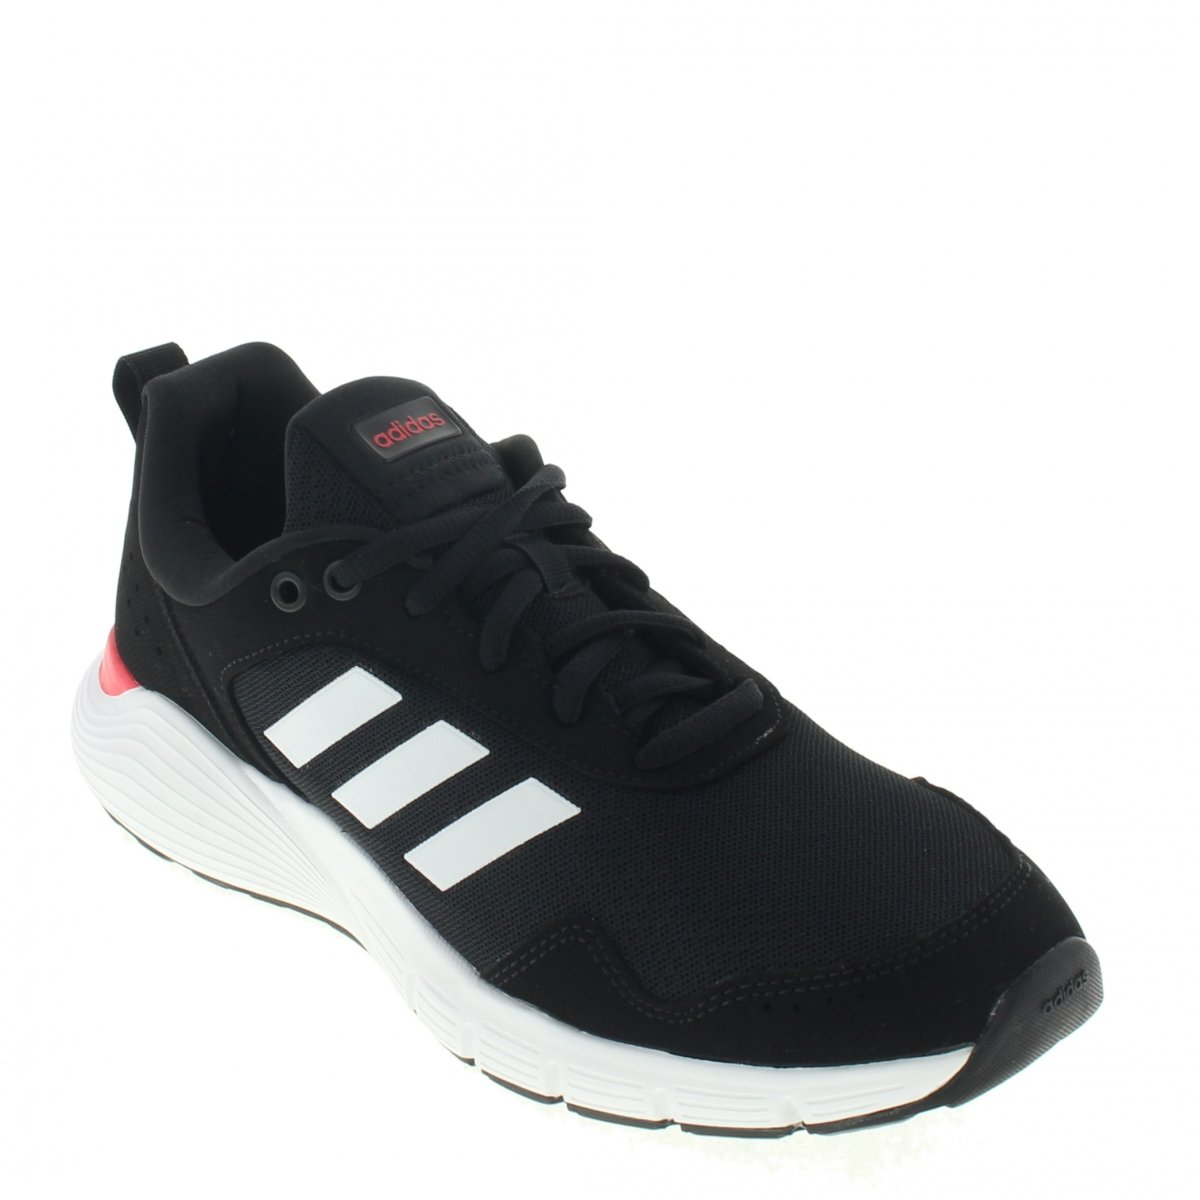 promo code 285ed 63a73 Tenis Adidas Fluidcloud Neutral w